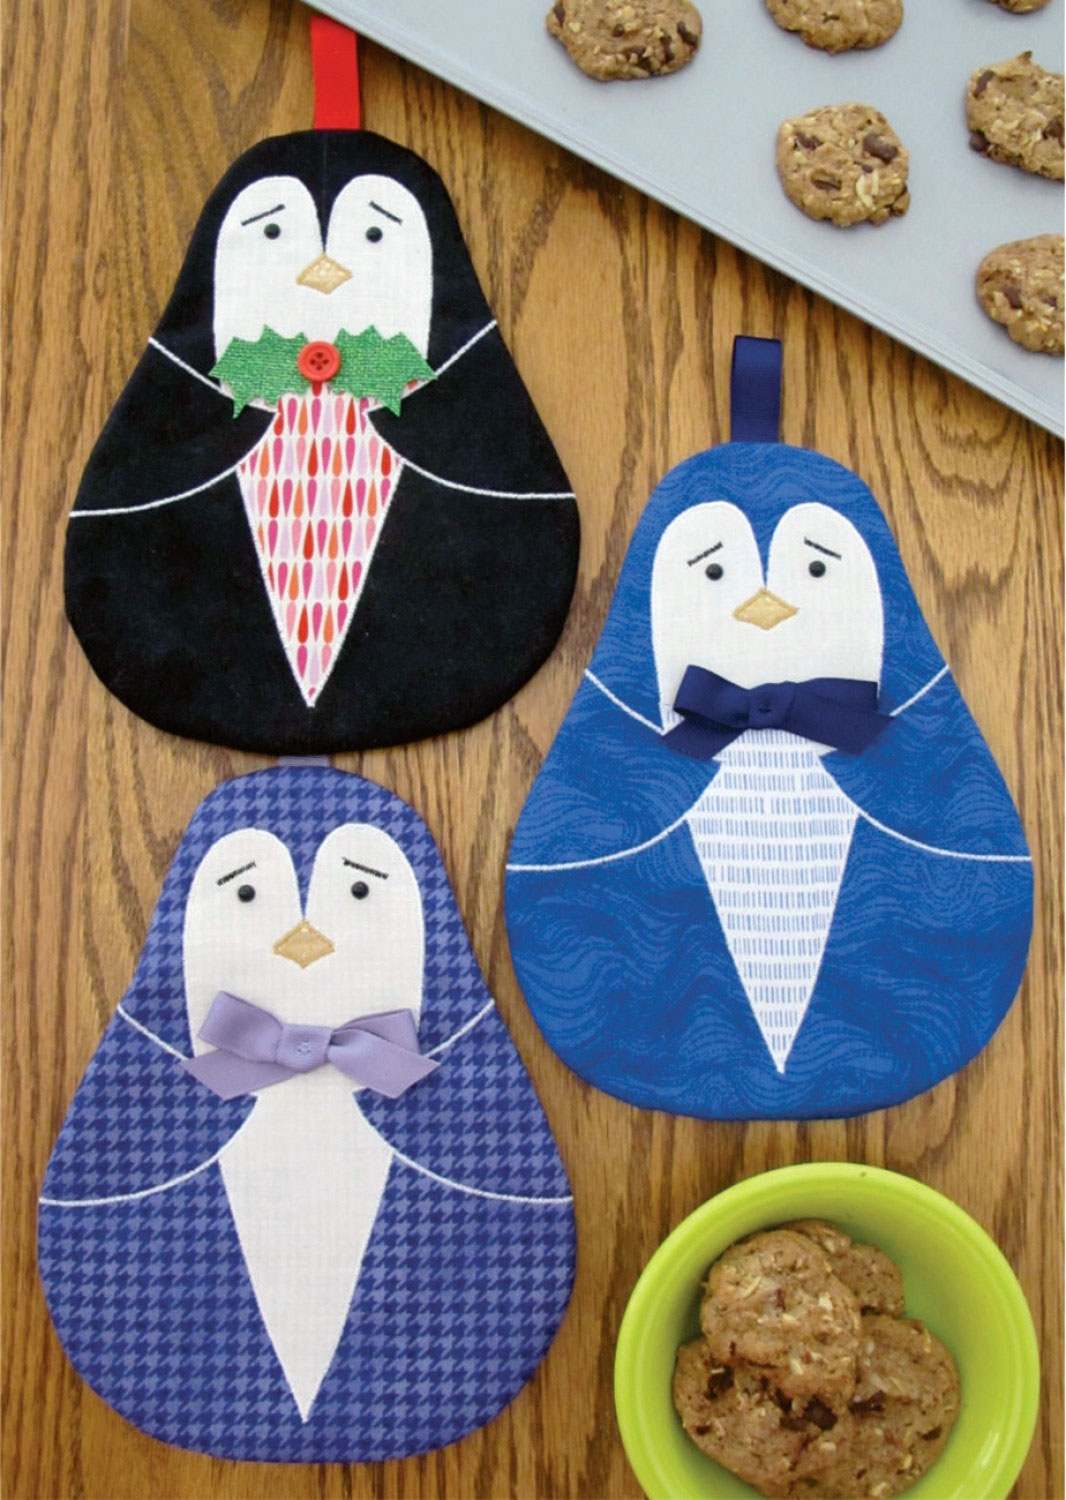 Tux-sewing-pattern-Susie-C-Shore-1